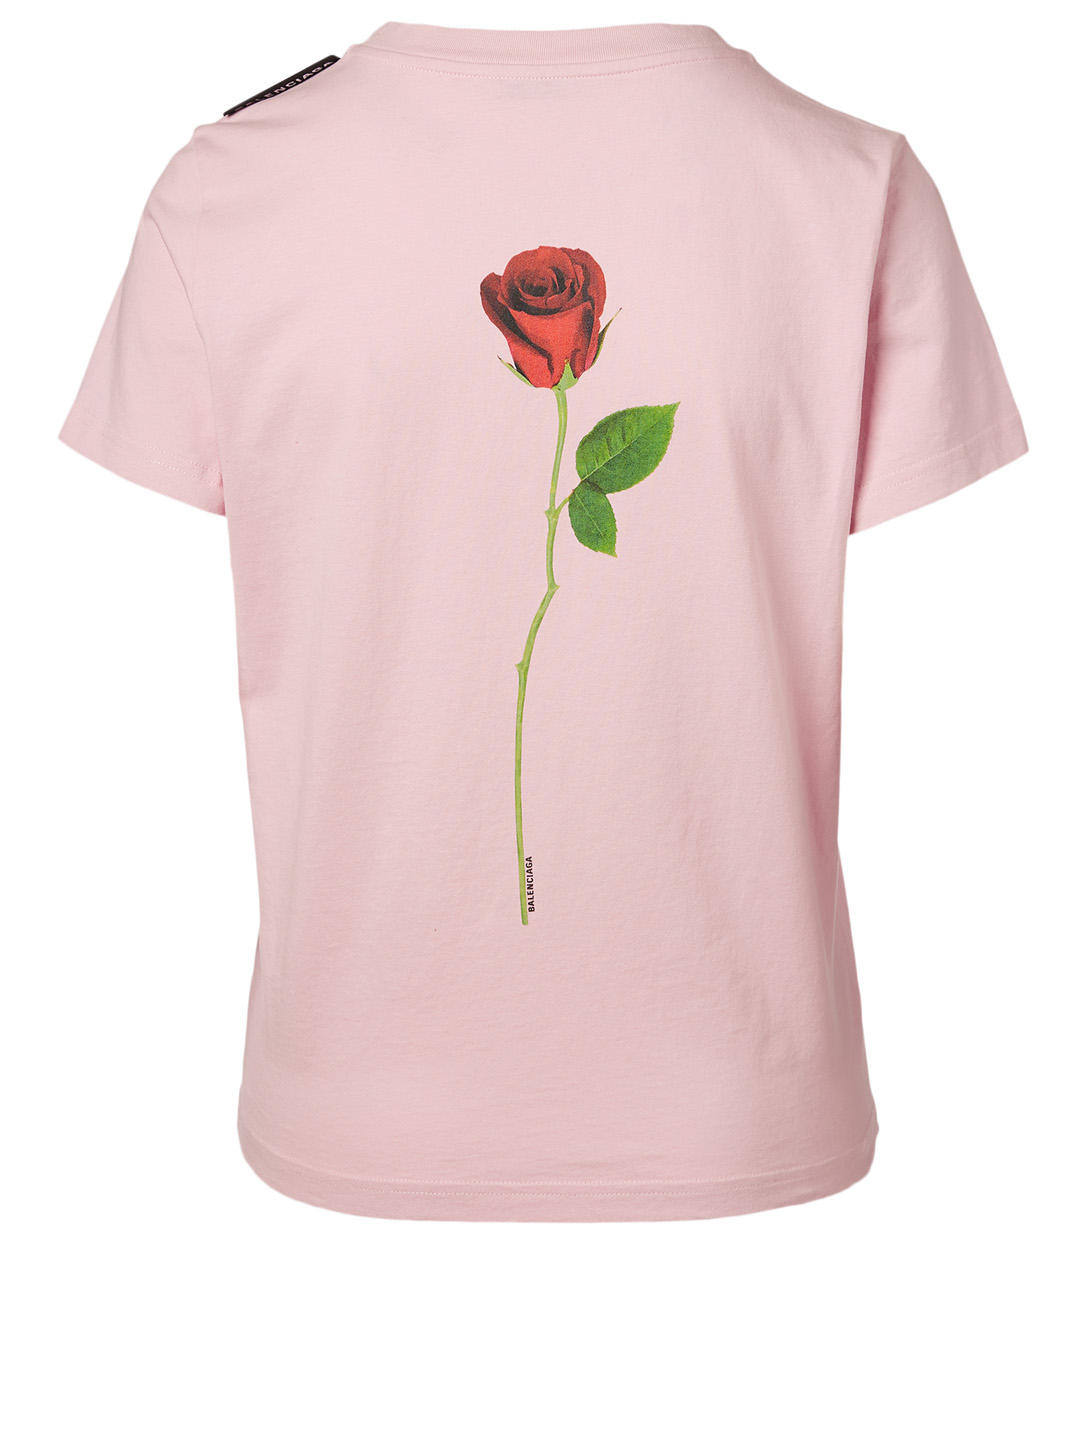 BALENCIAGA Rose T-Shirt Women's Pink